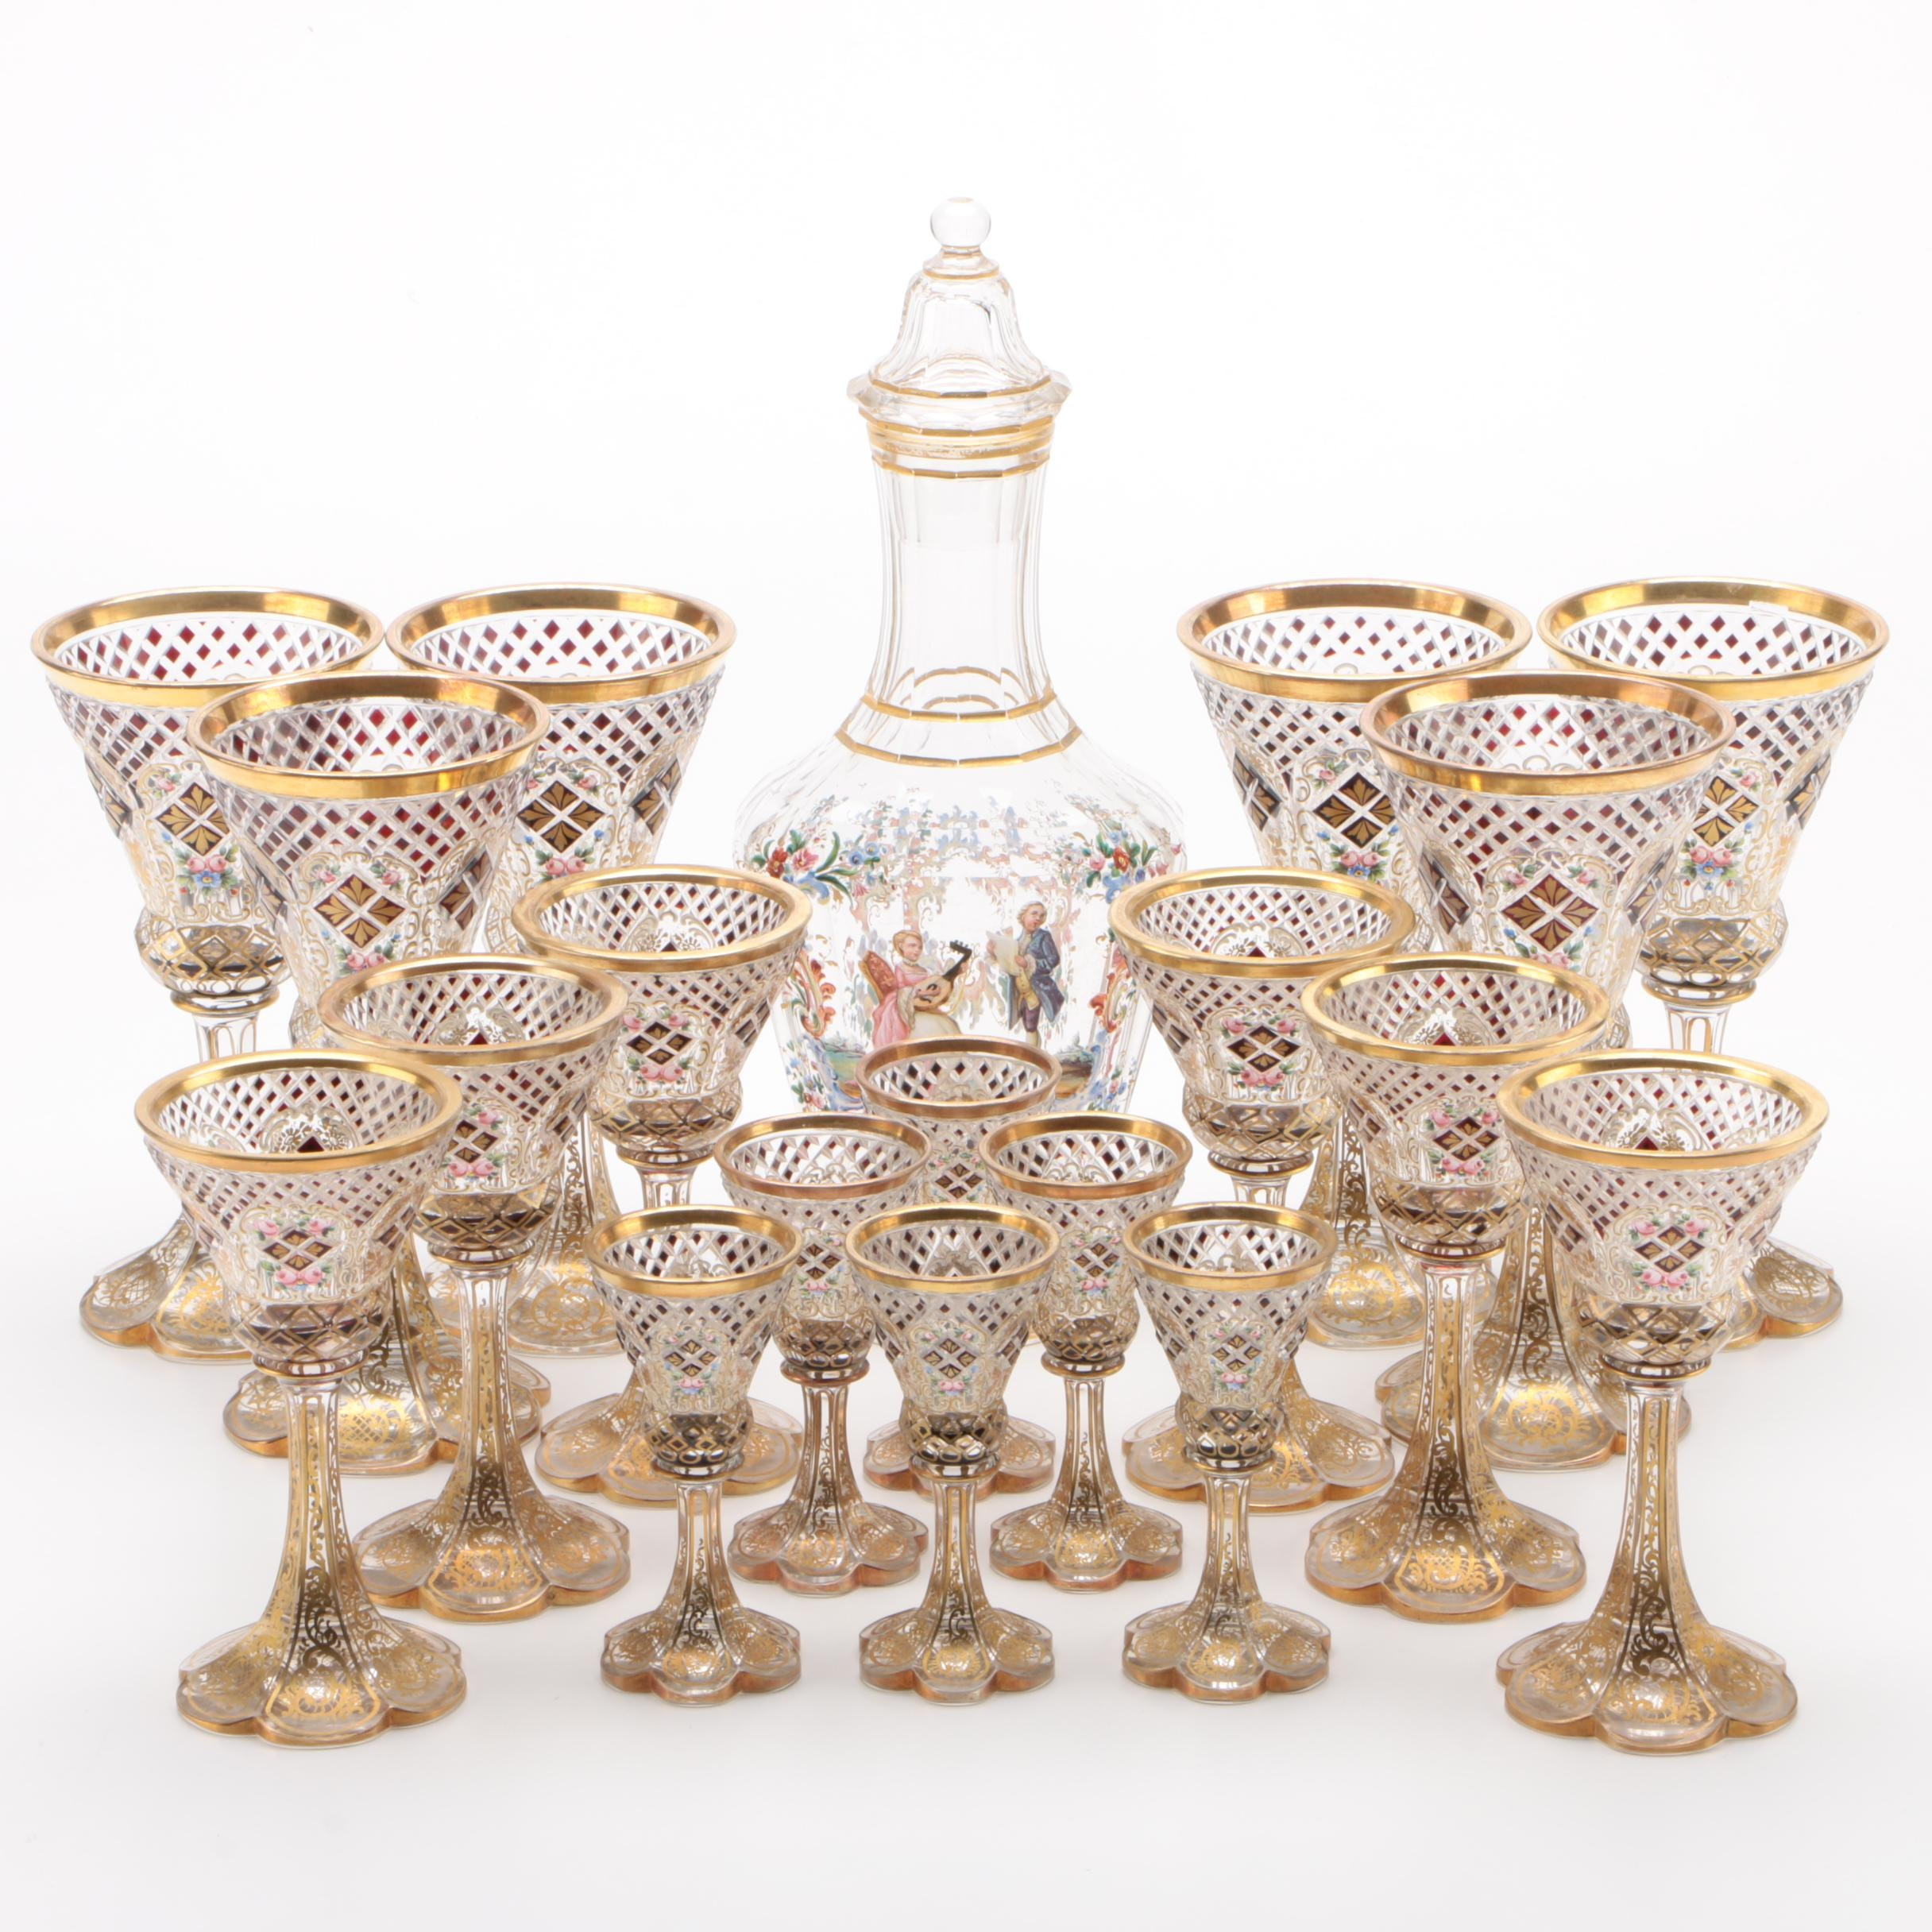 Bohemian Enameled and Gilt Cut Glass Stemware and Decanter, Late 19th Century